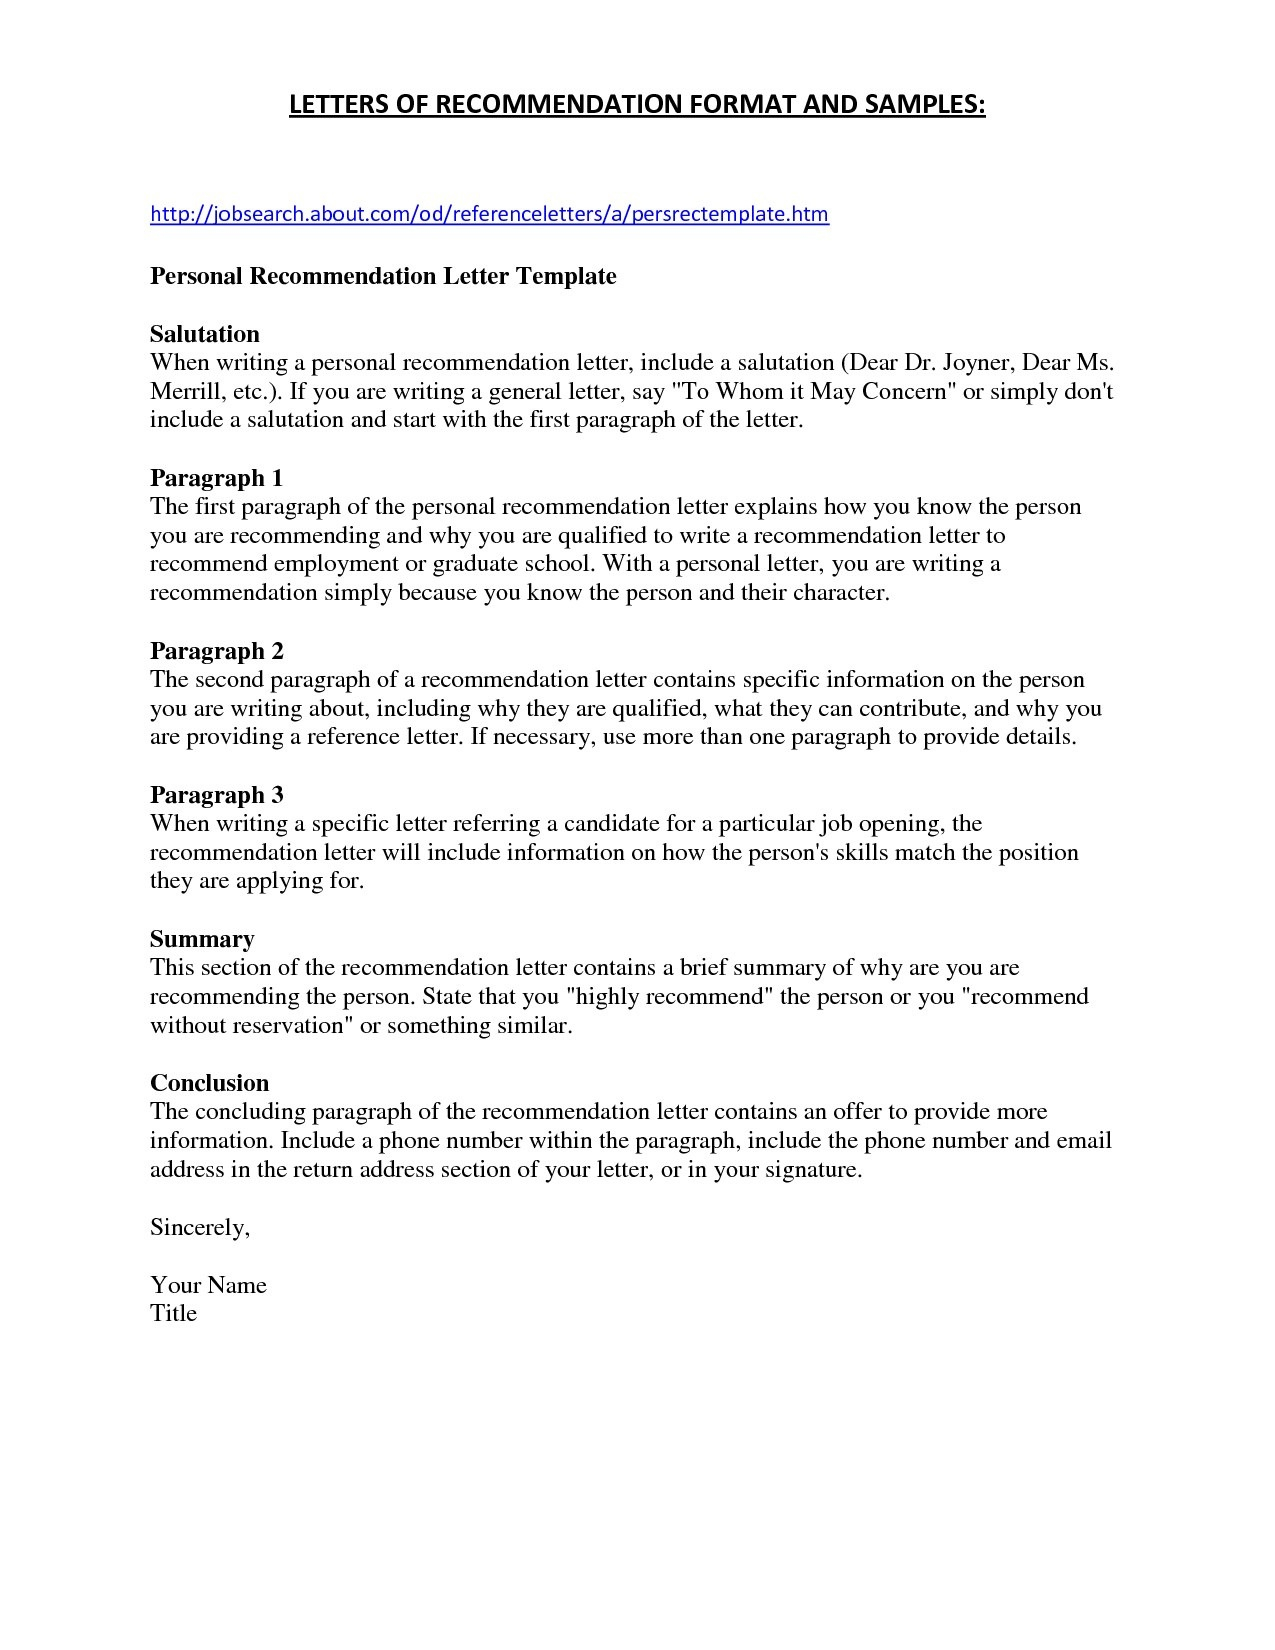 Security Guard Resume Template - Police Ficer Resume Examples New Police Ficer Resume Resume Samples